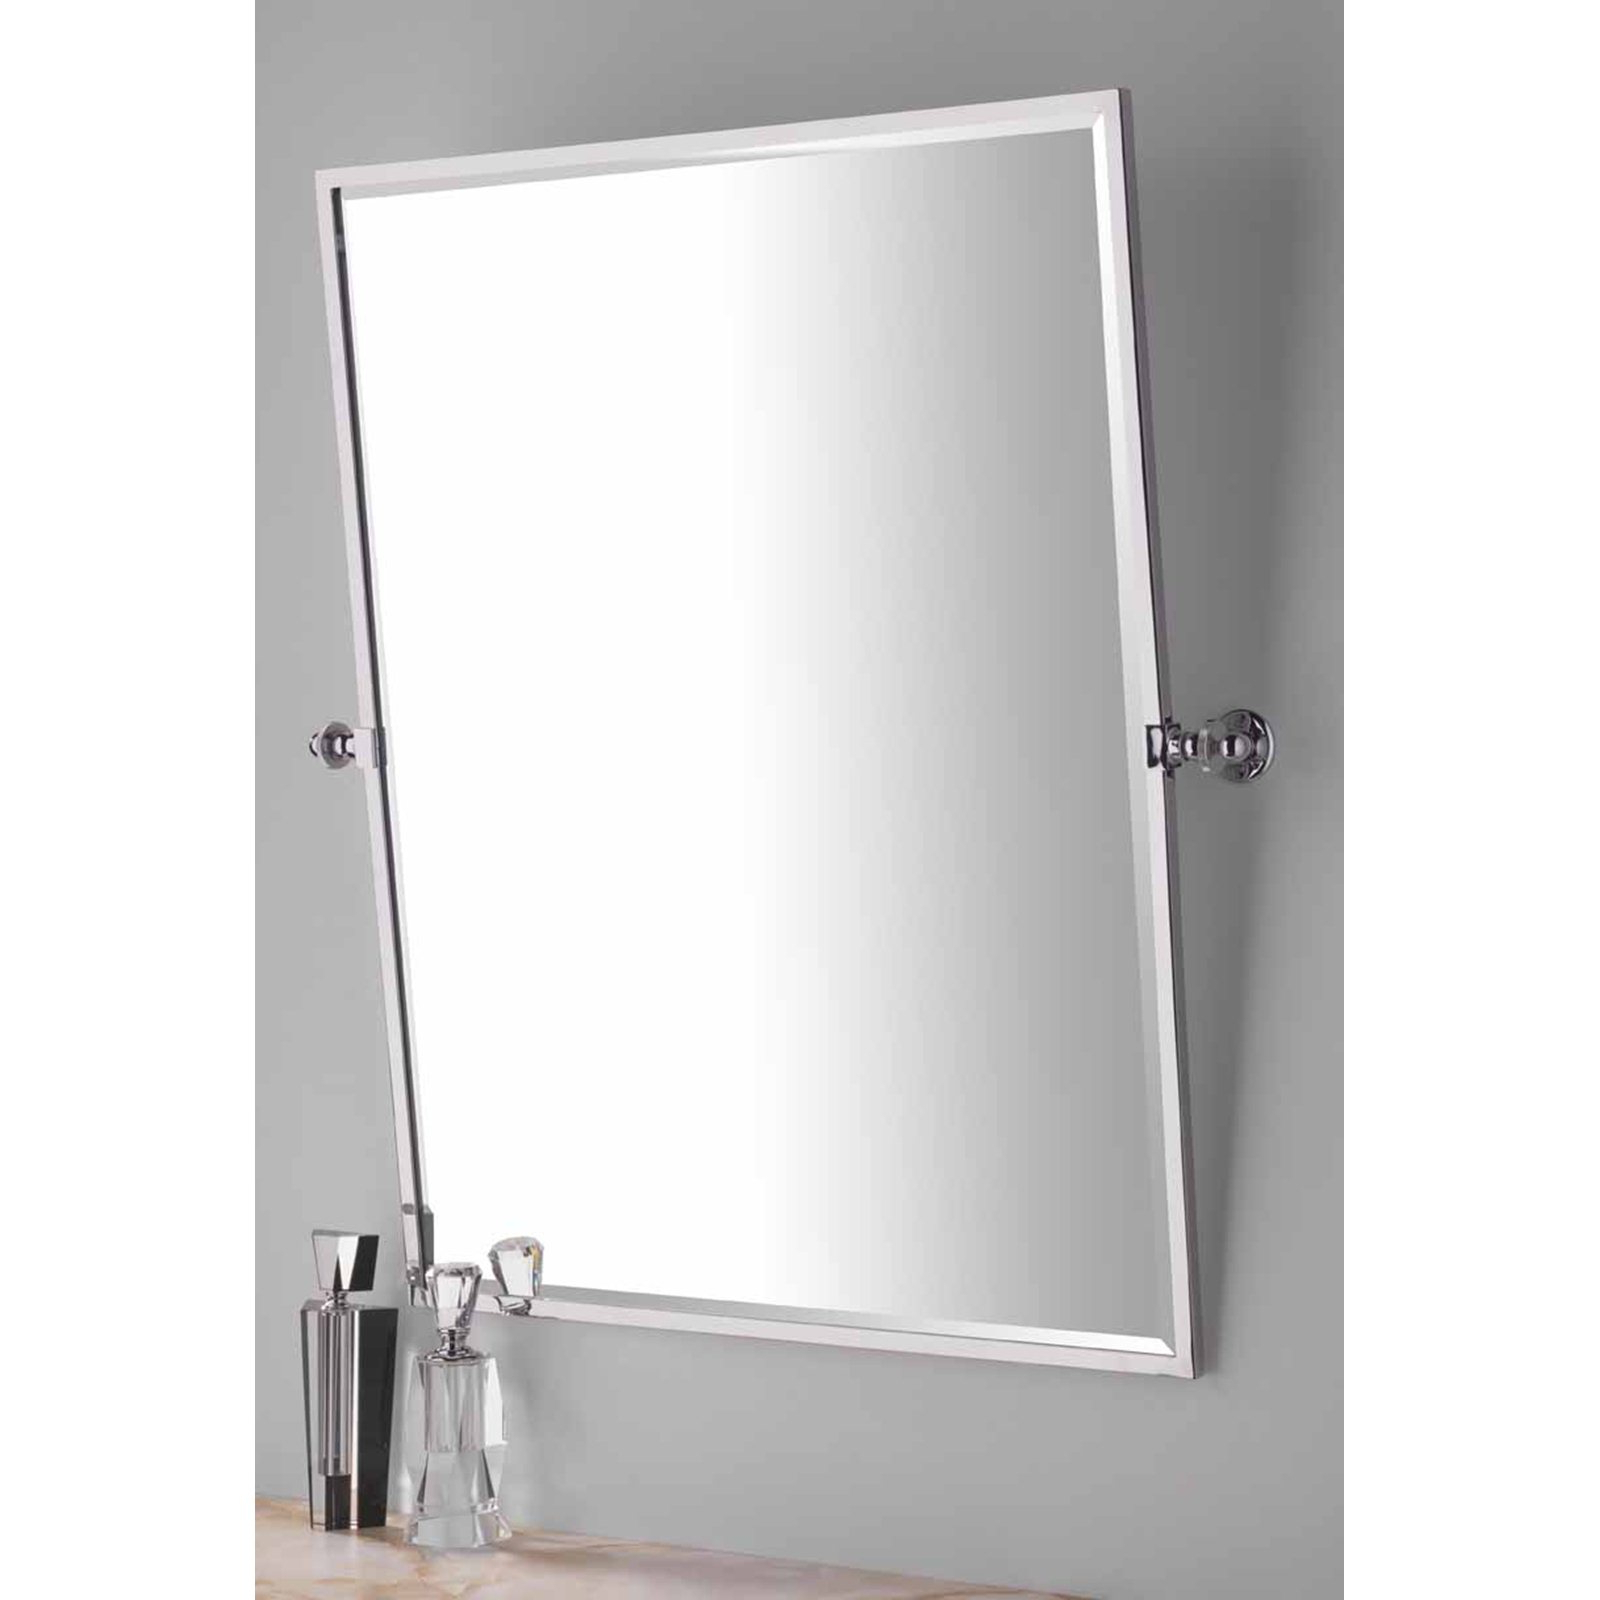 Top 35 Fabulous Cheap Decorative Mirrors Starburst Mirror Intended For Latest Tilting Wall Mirrors (View 19 of 20)